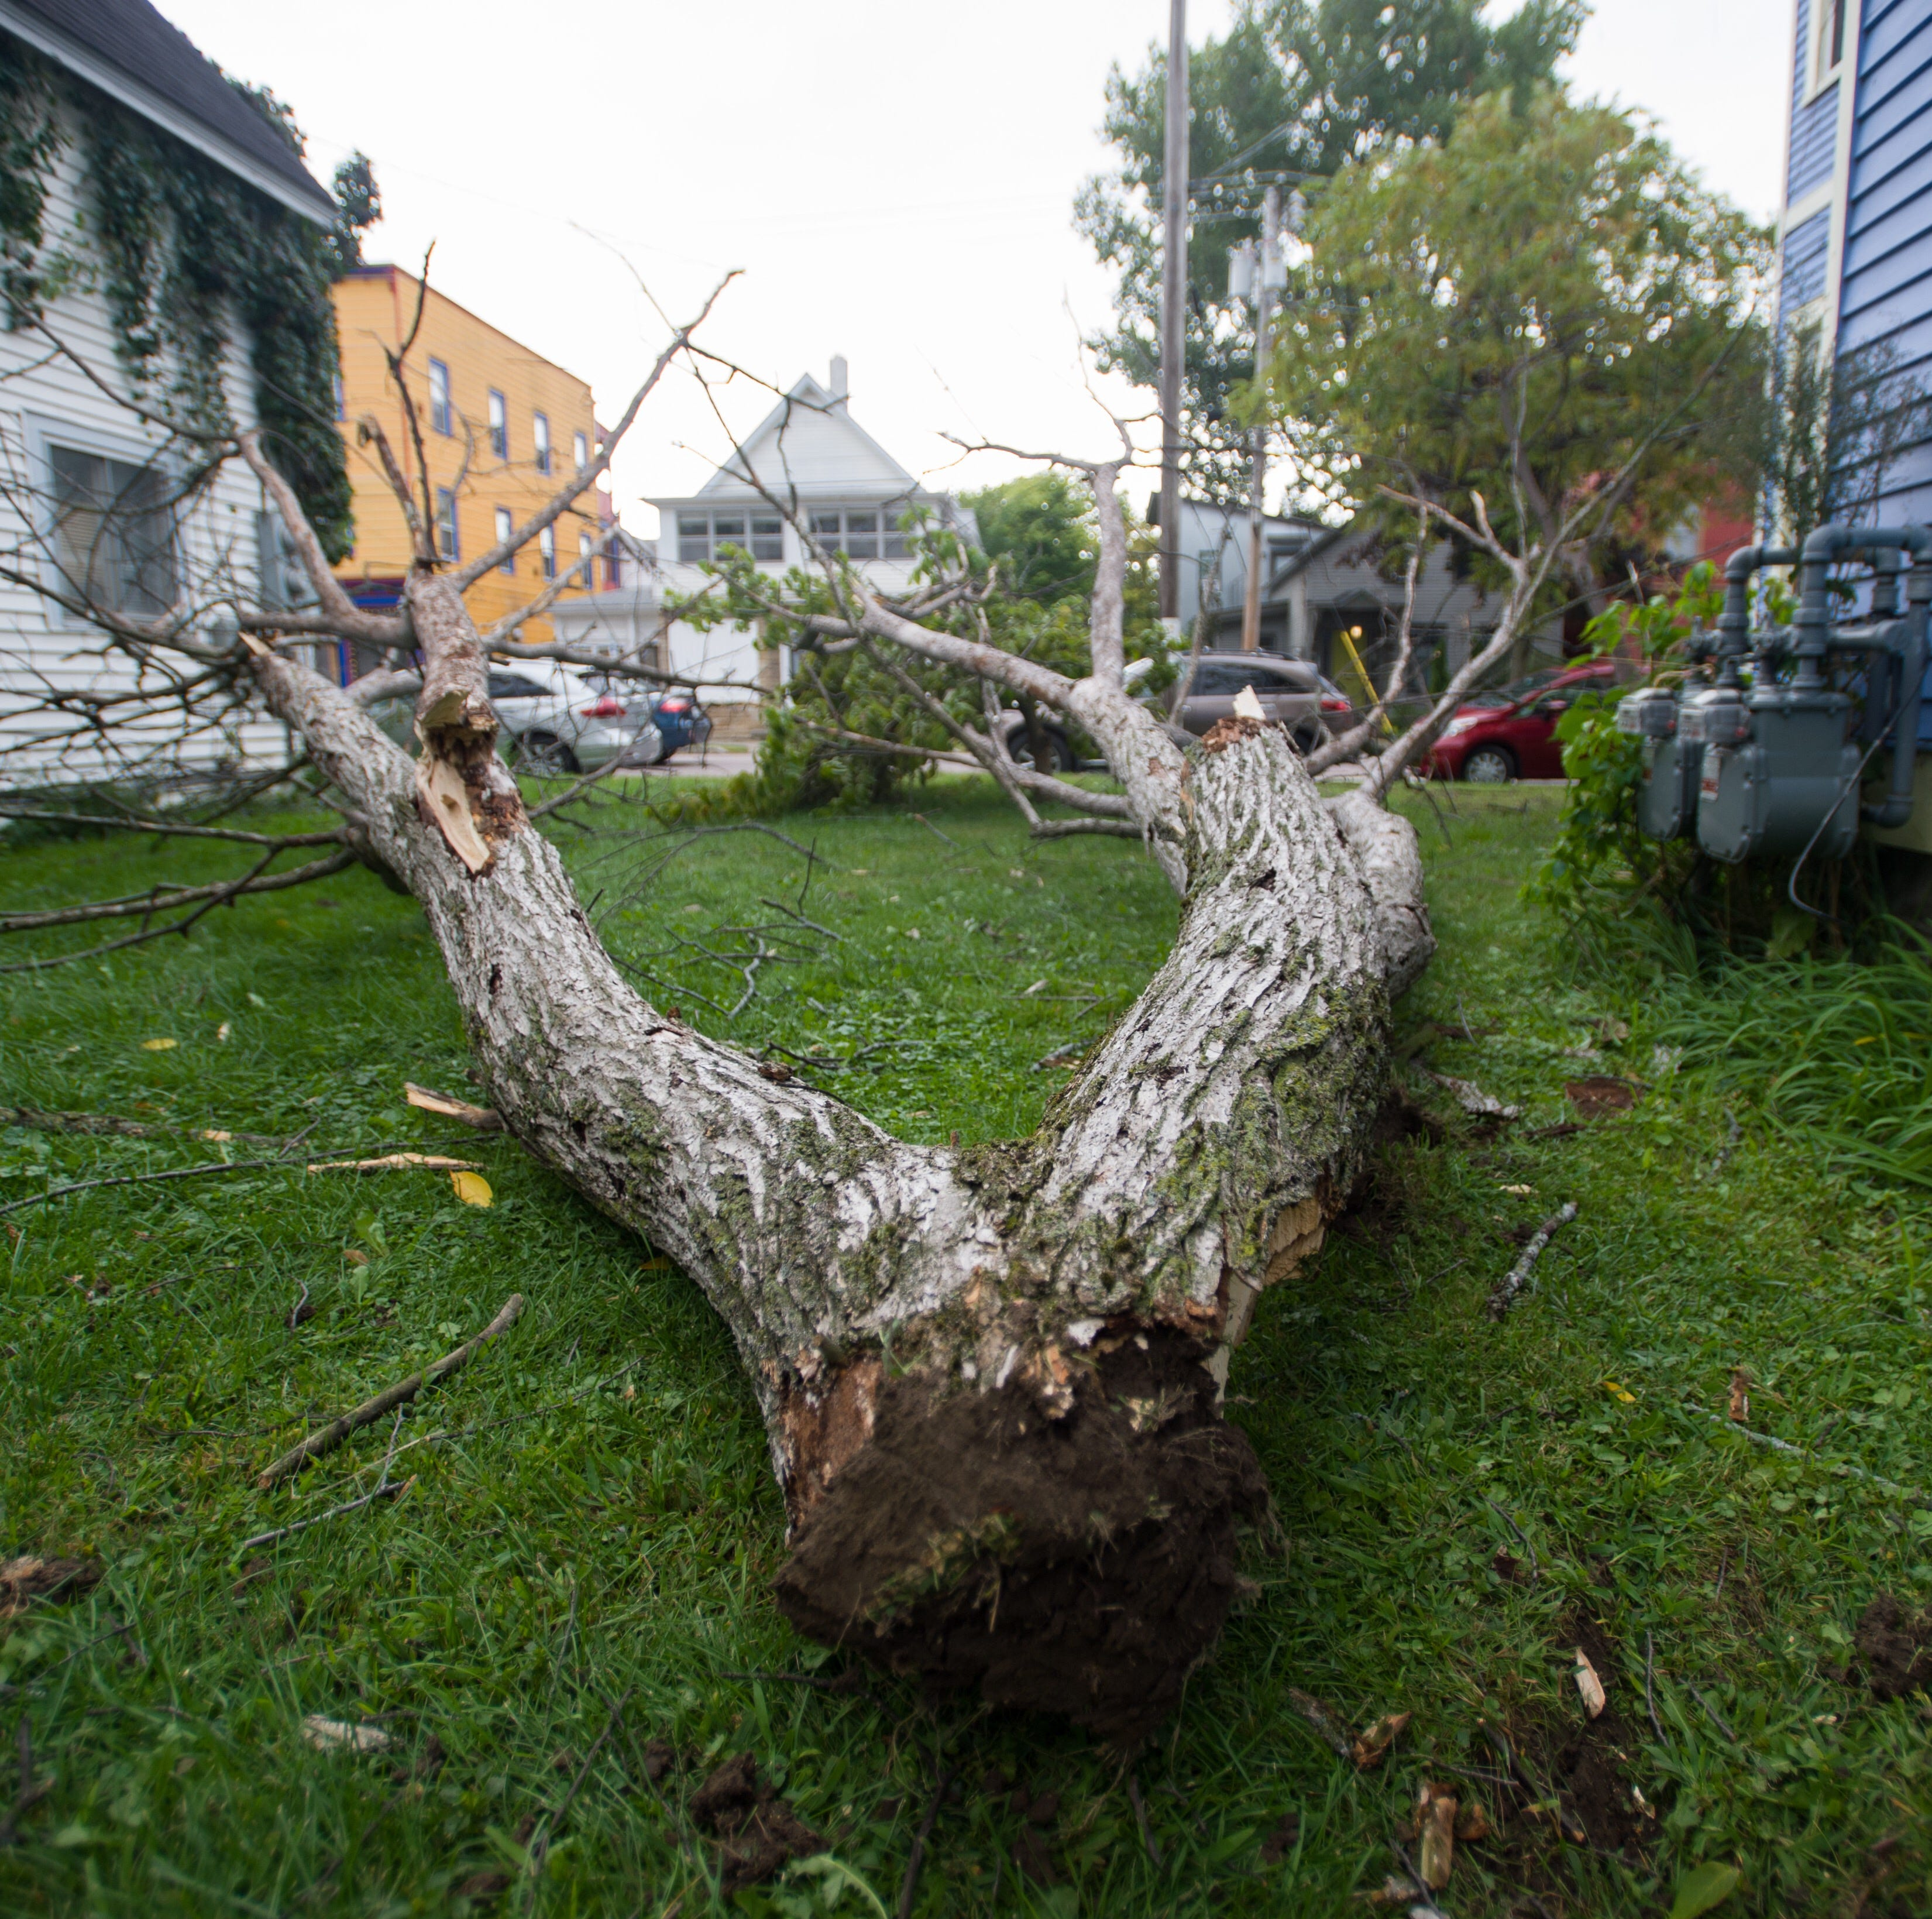 Vermont windstorm: Power outages spread on a stormy, topsy-turvy weather day